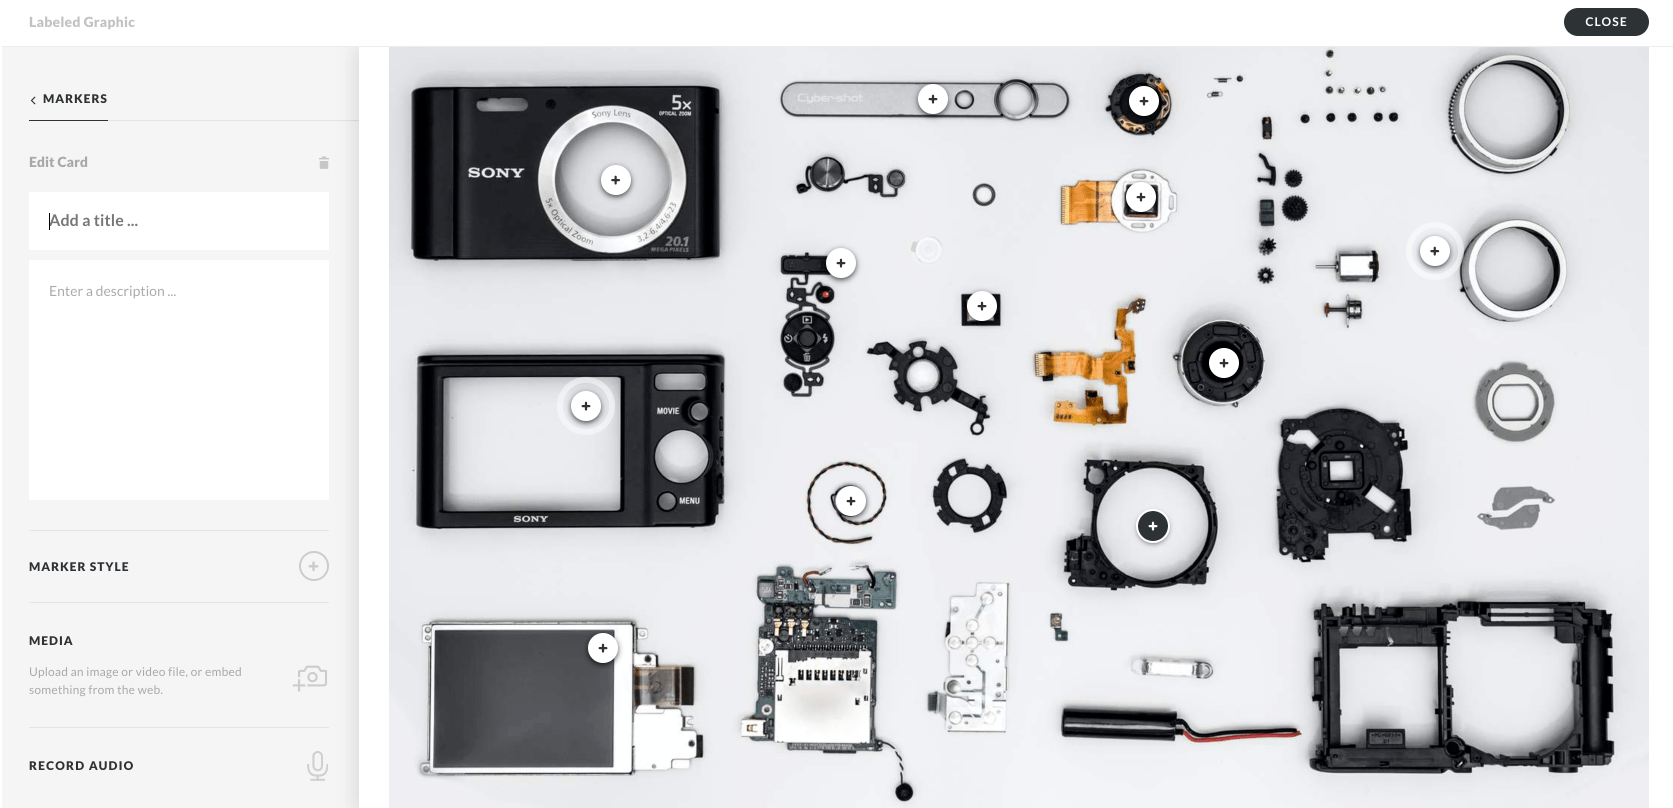 Articulate Rise edit view showing a label diagram of the parts of a camera